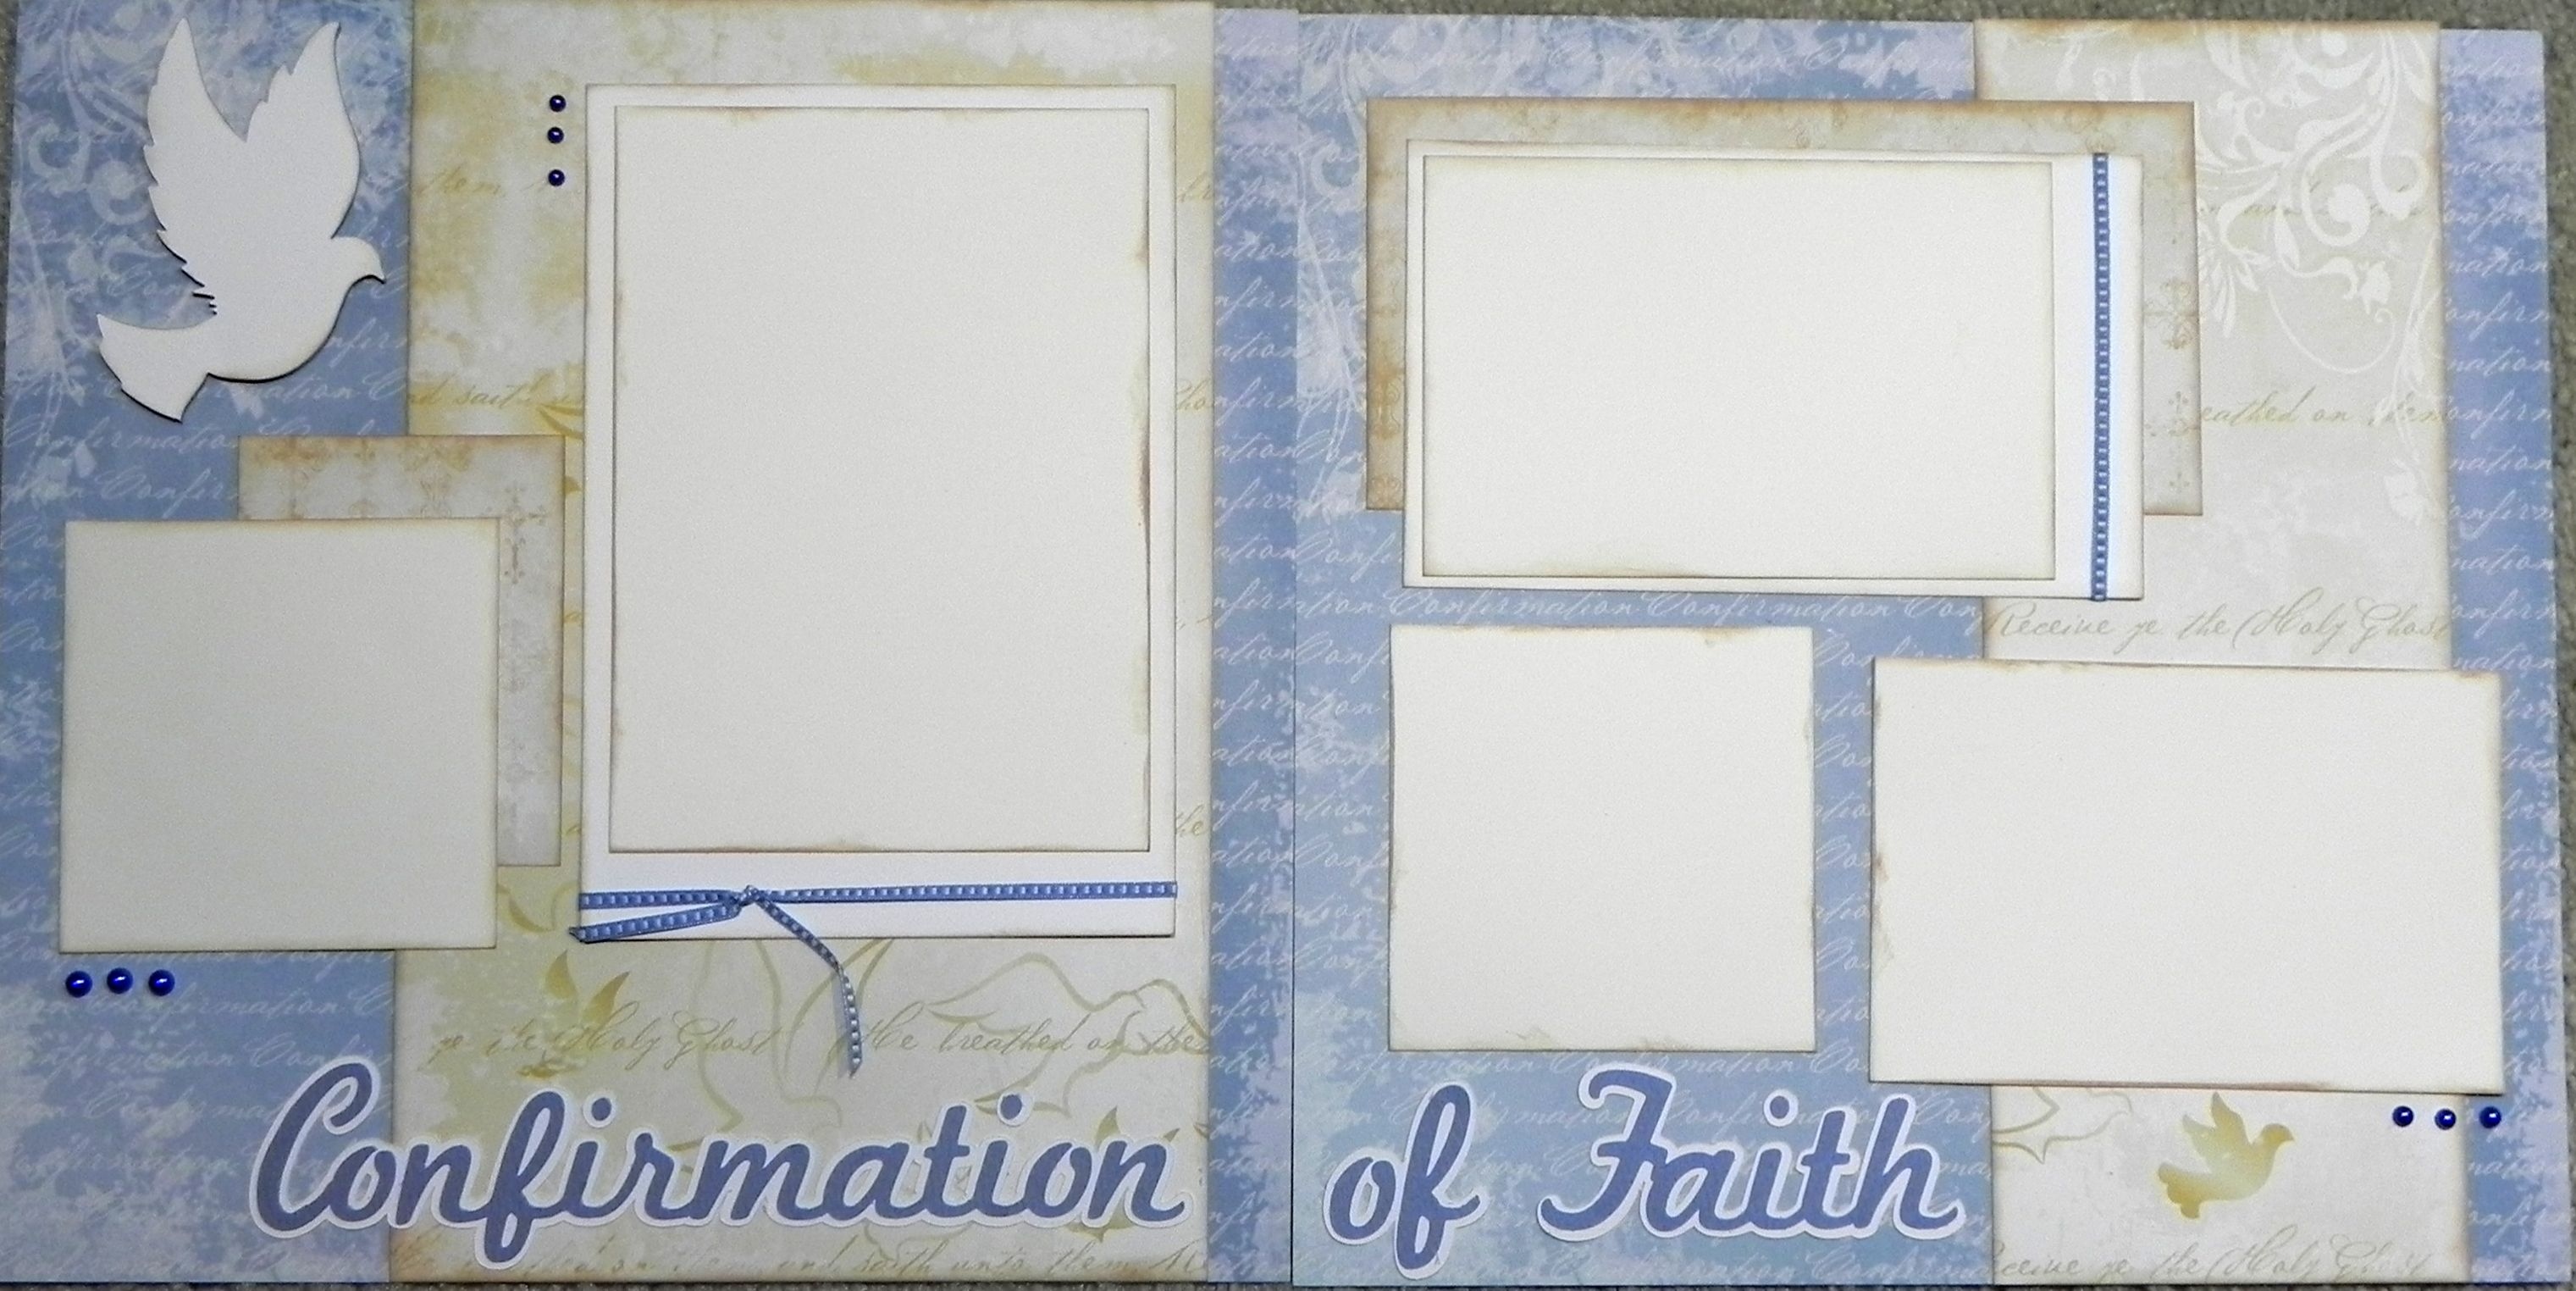 Scrapbook ideas with ribbon - Images Of Confirmation Scrapbook Pages Dove The Pre Cut Photo